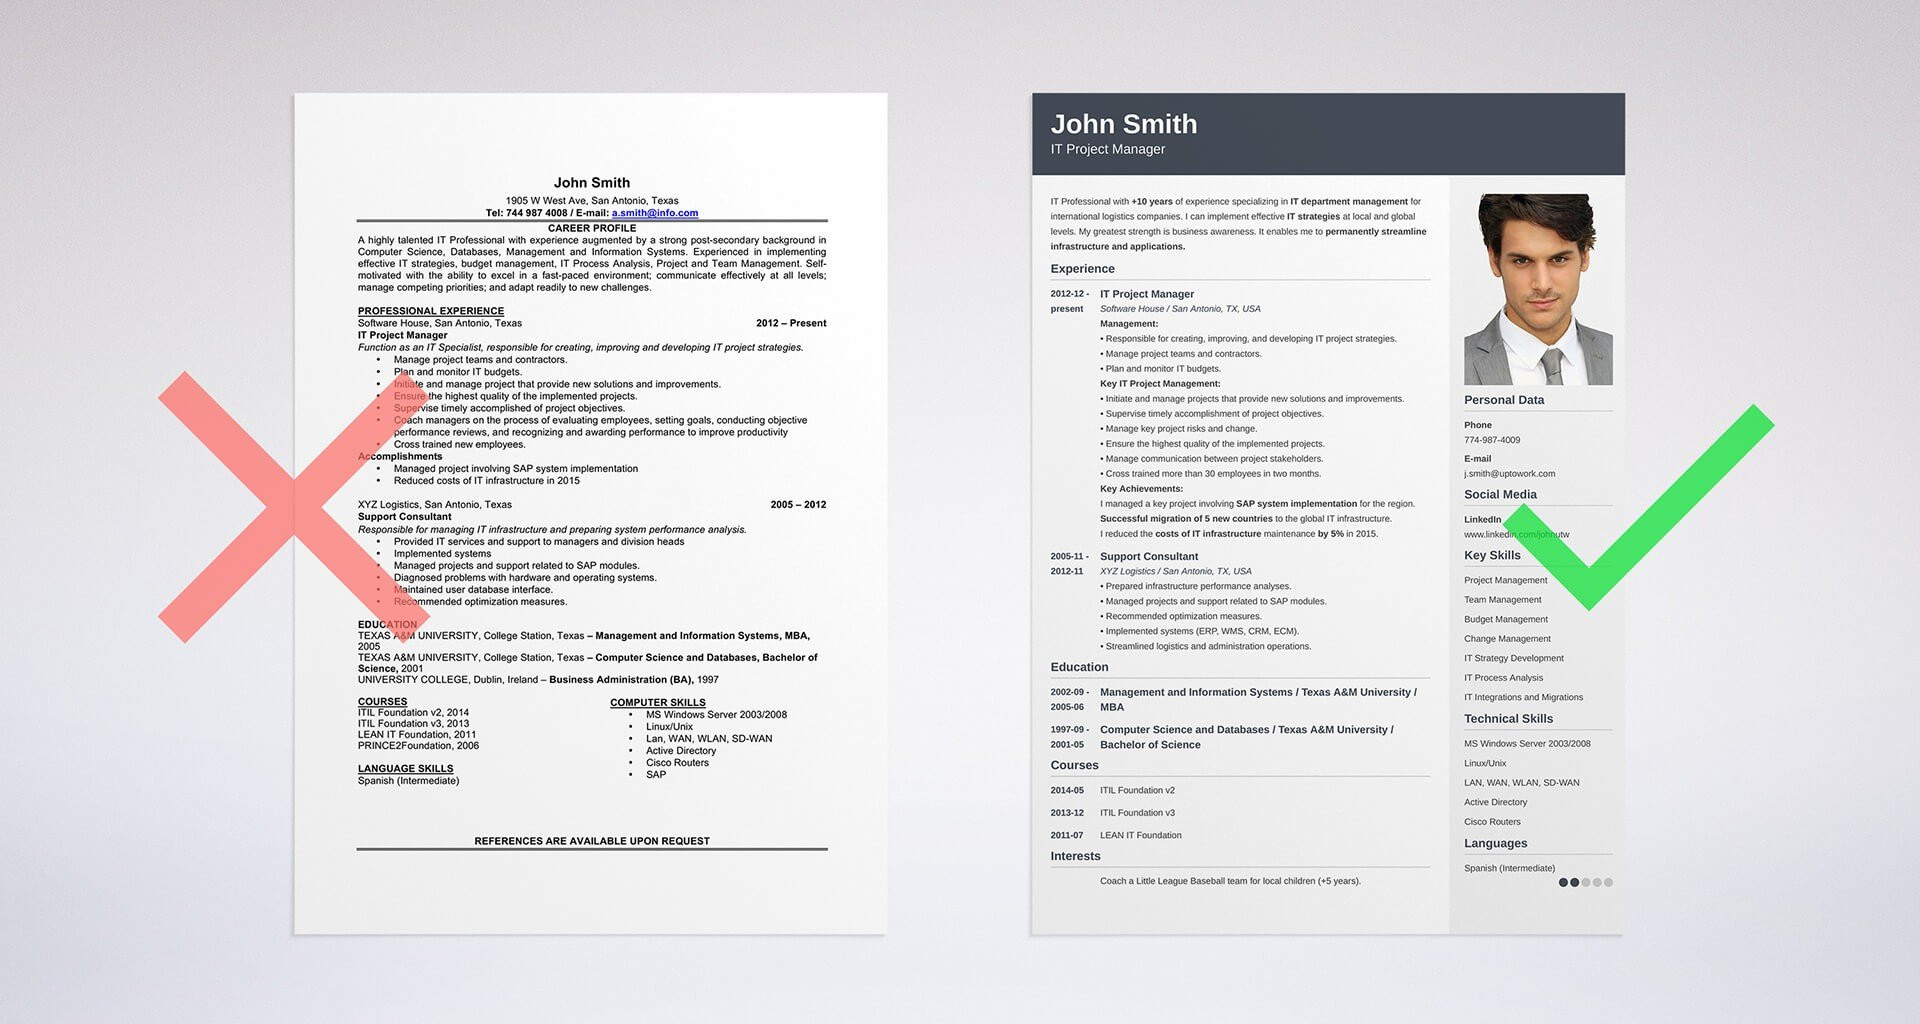 hobbies and interests on a resume